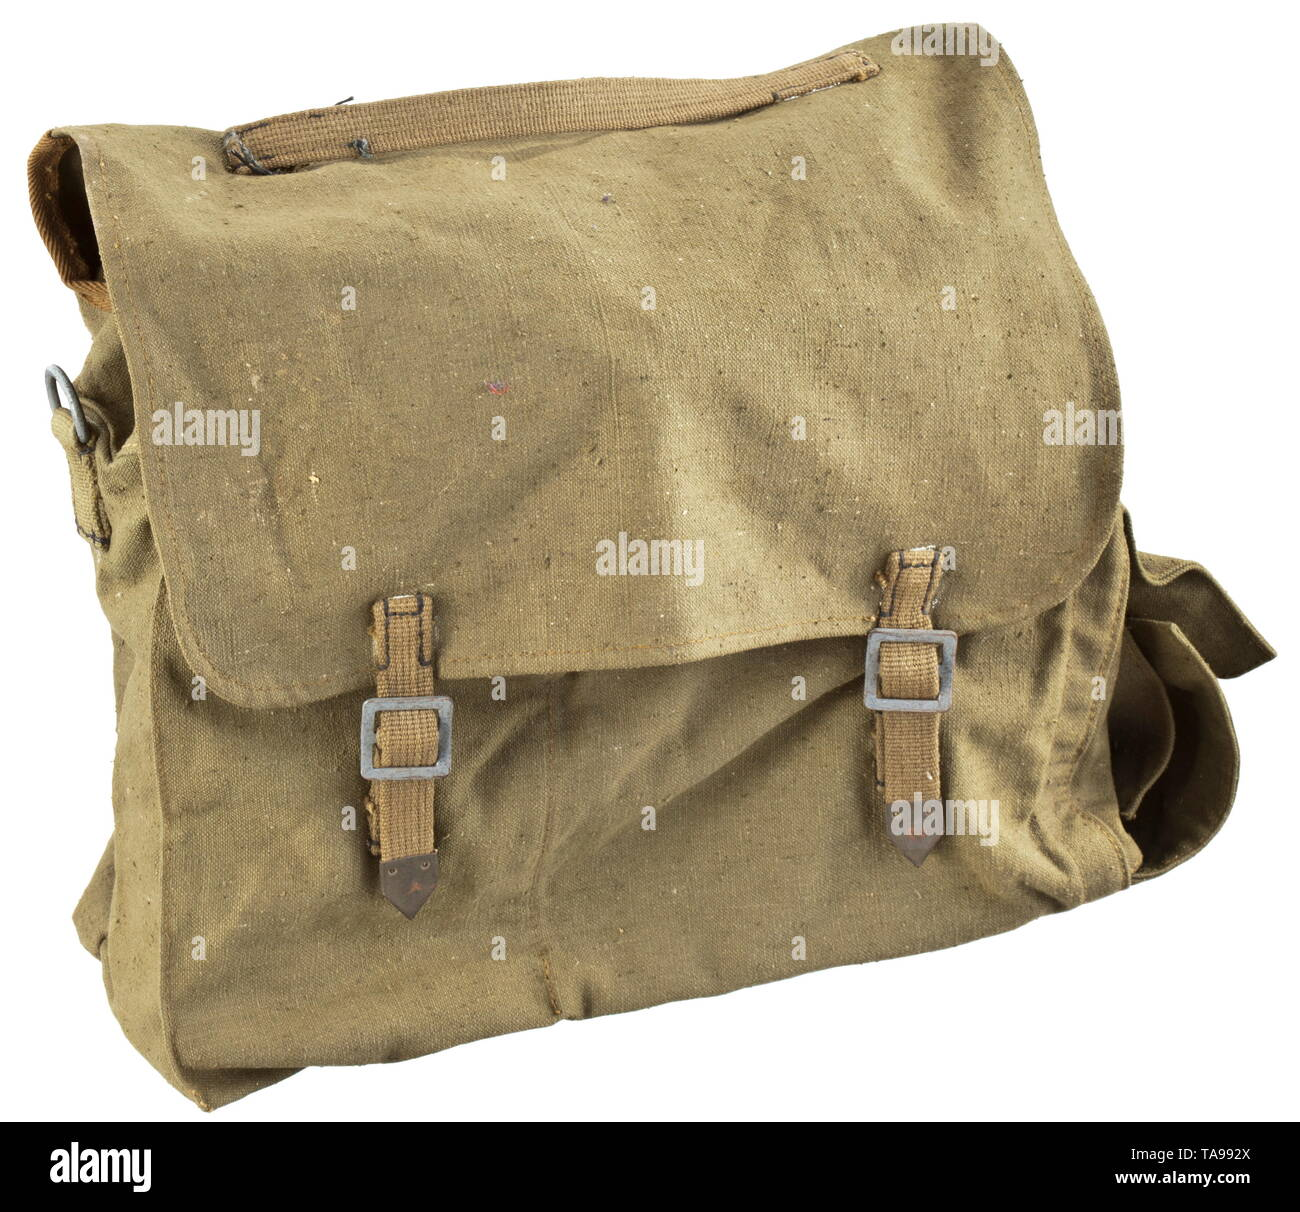 A bag for explosives for engineer units depot piece with Reich factory number historic, historical, 20th century, Editorial-Use-Only - Stock Image